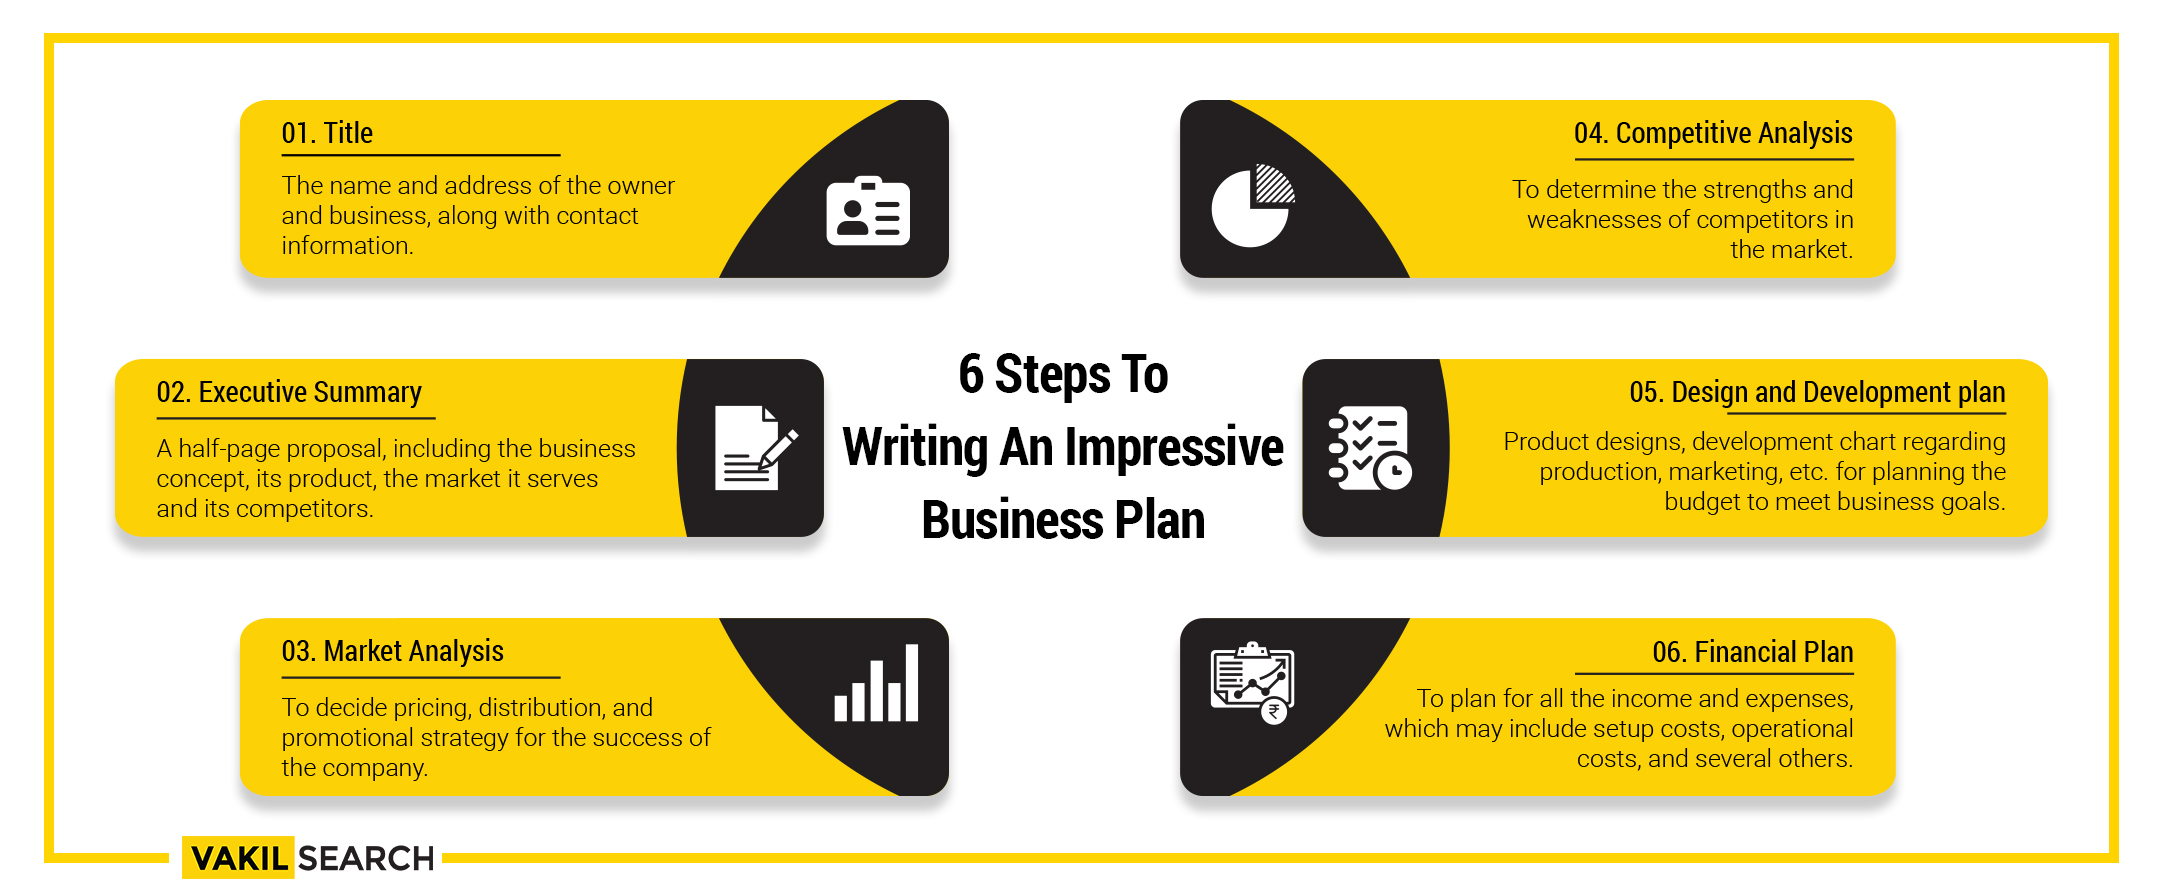 6 Steps To Writing An Impressive Business Plan